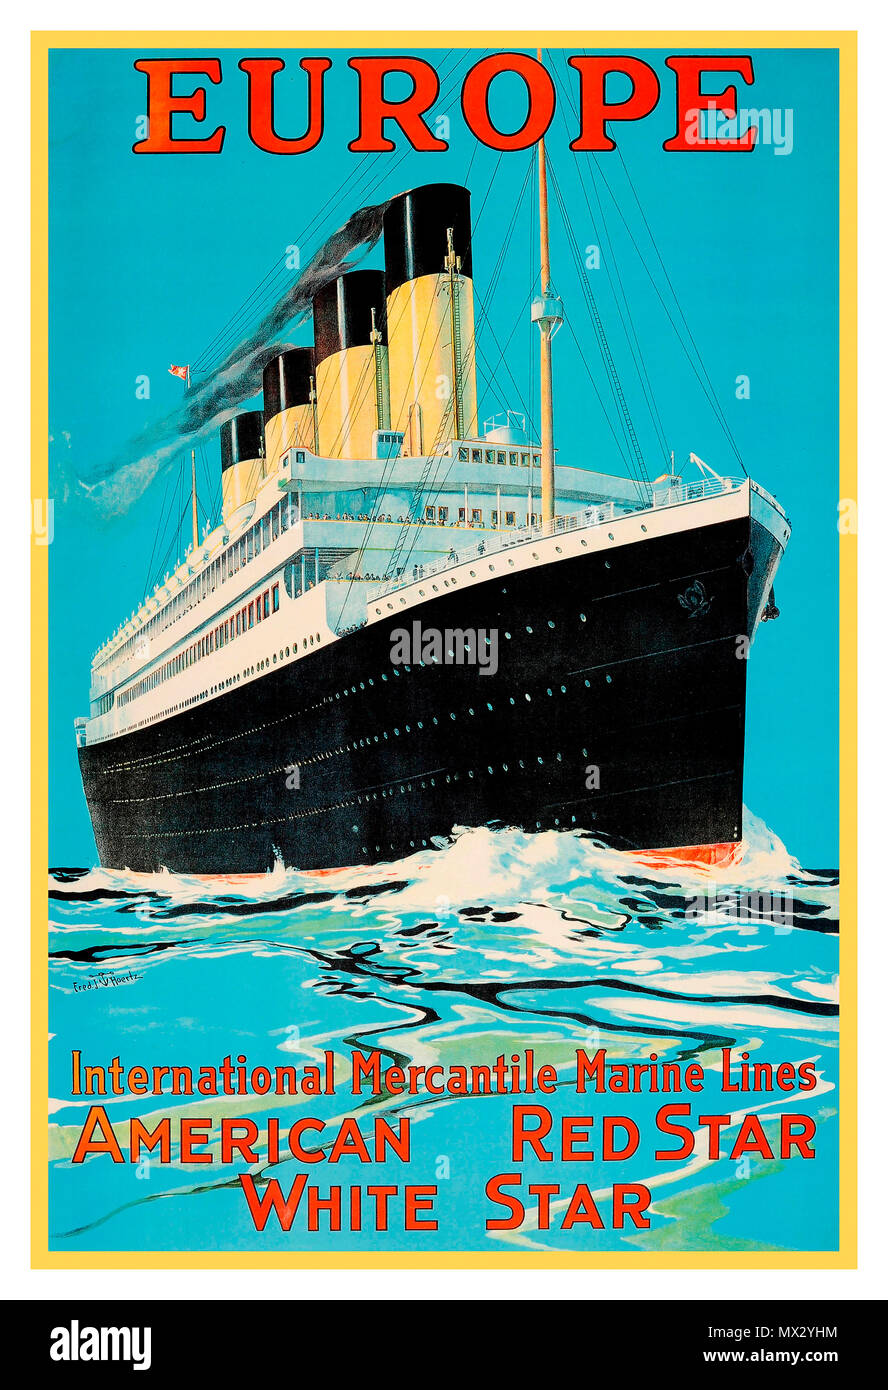 1900's Vintage cruise ship liner travel poster Europe American Red Star White Star cruise line RMS Olympic by Fred J Hoertz - Stock Image